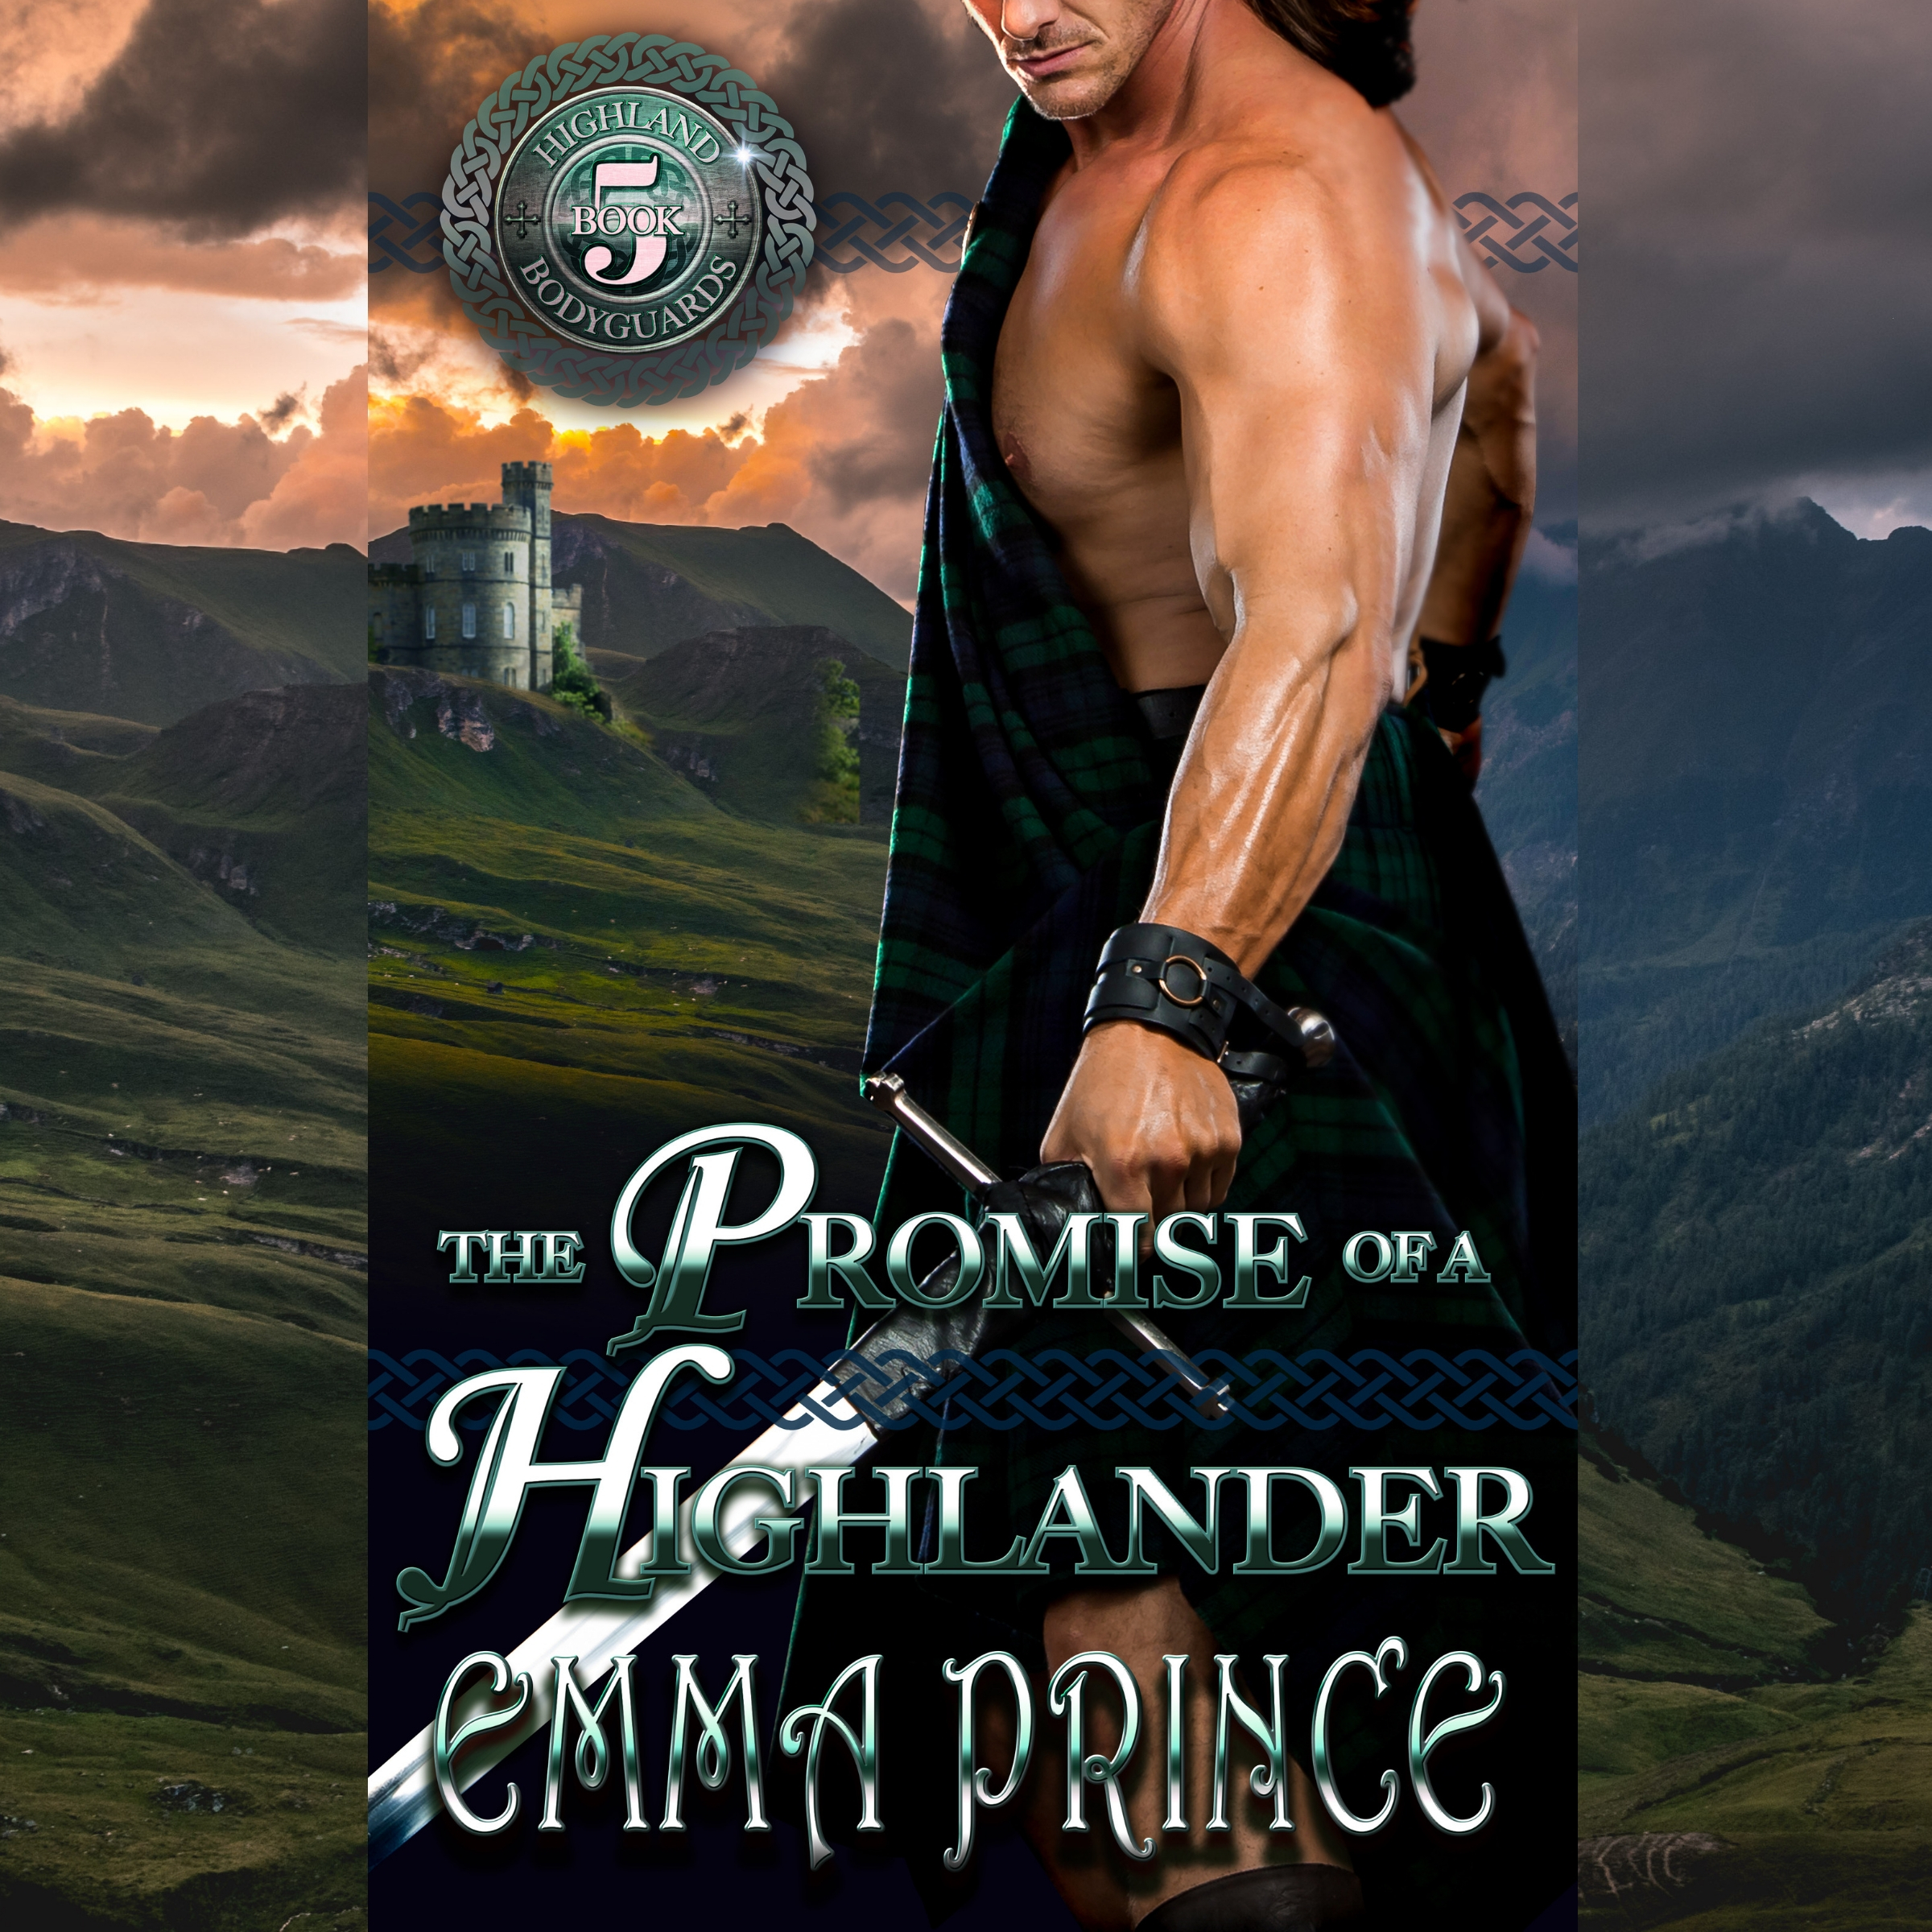 The Promise of a Highlander AUDIO cover.jpg